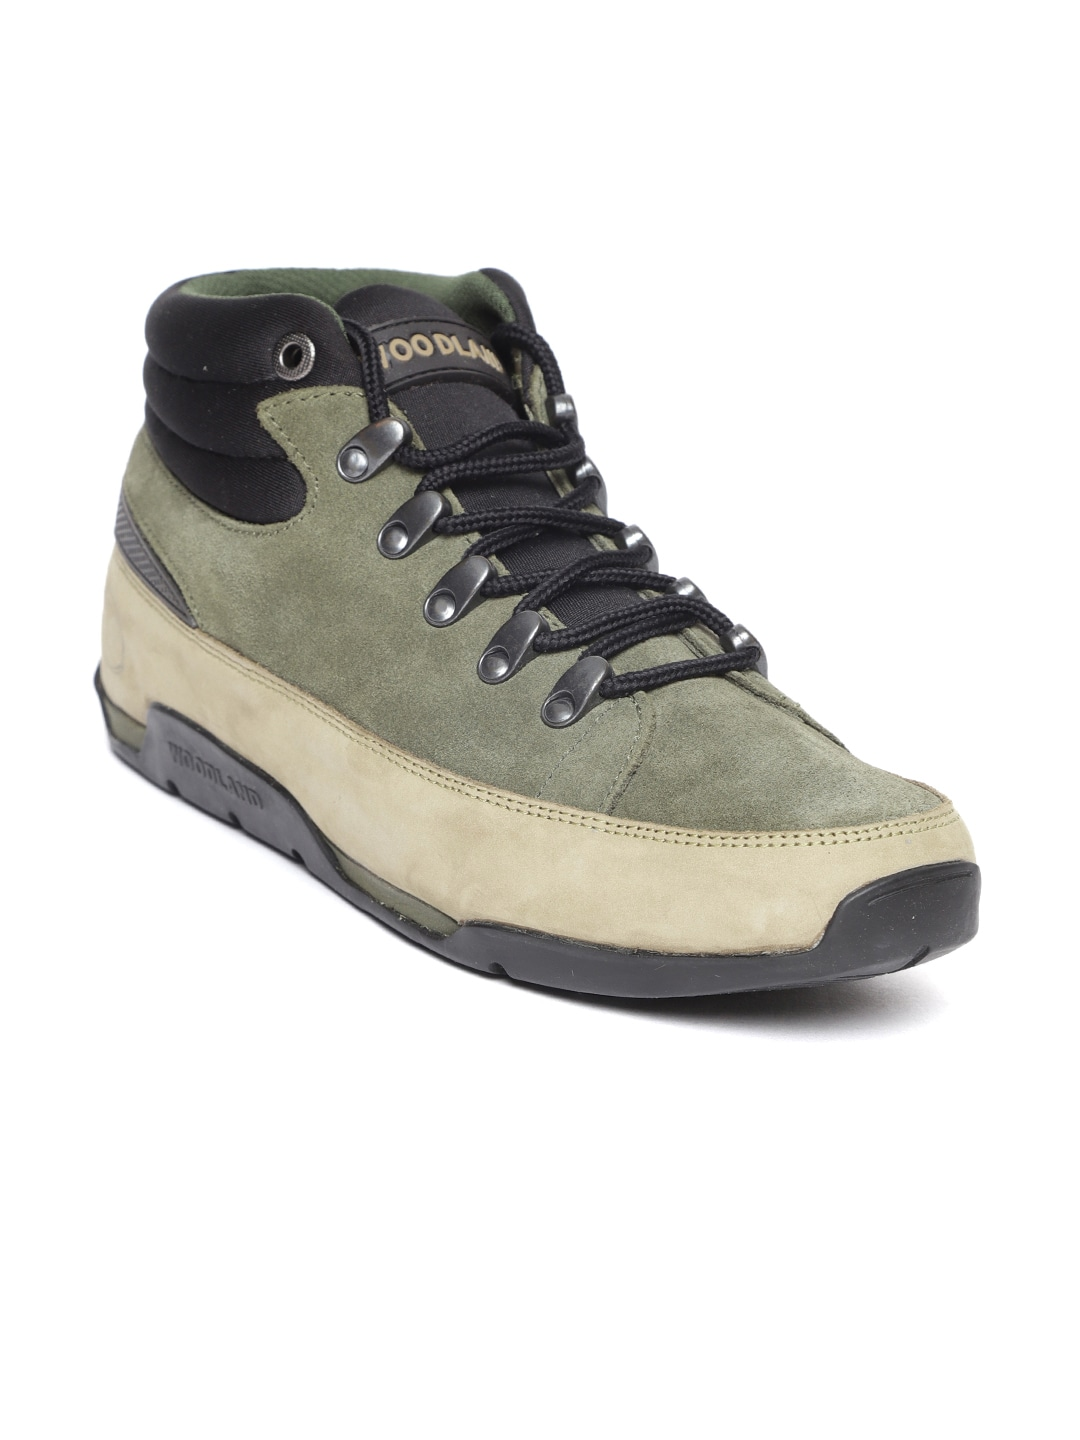 9e4add9f568 Woodland Shoes - Buy Genuine Woodland Shoes Online At Best Price - Myntra